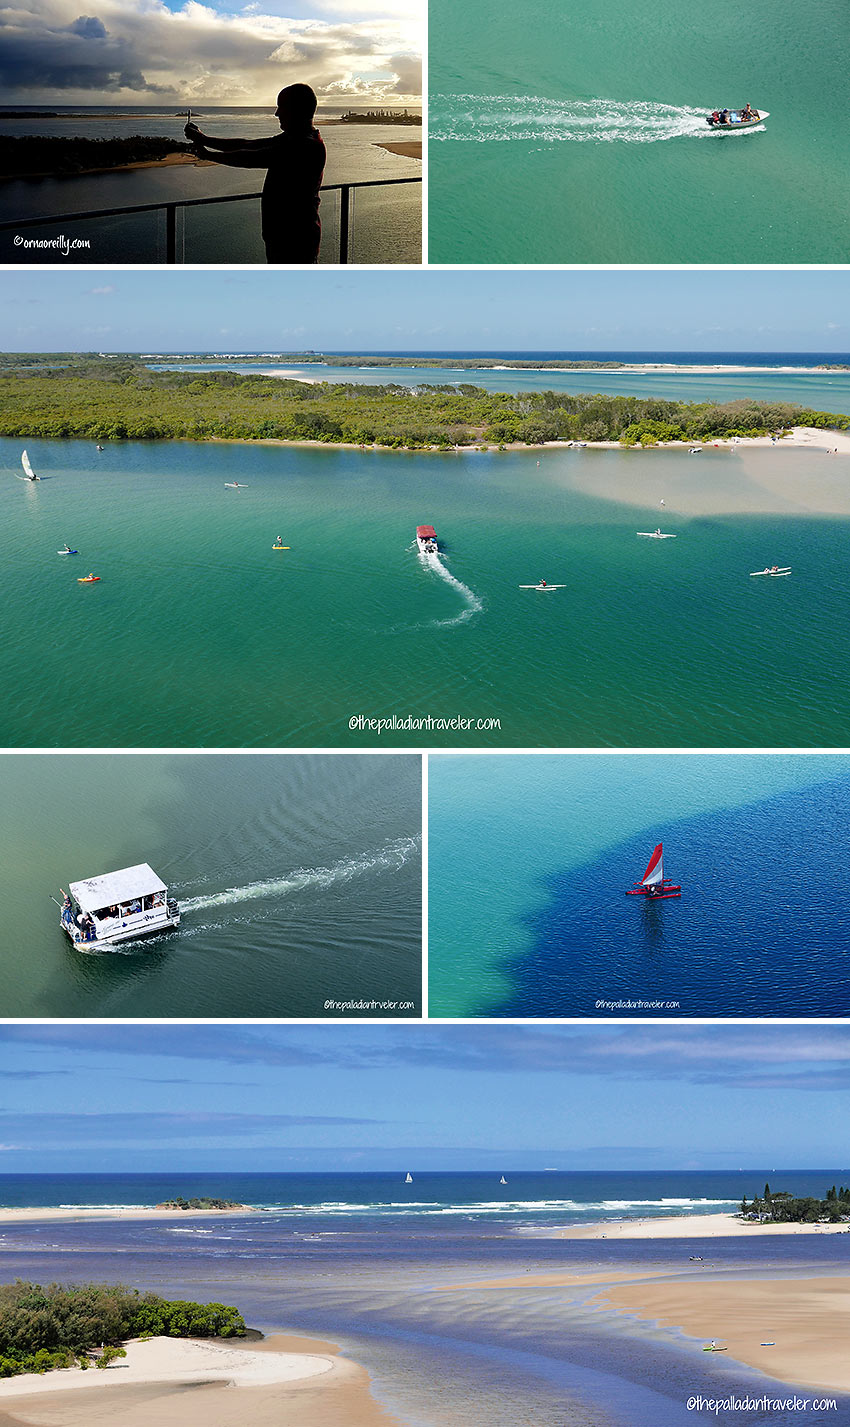 boats at the junction of the Maroochy River and the Coral Sea